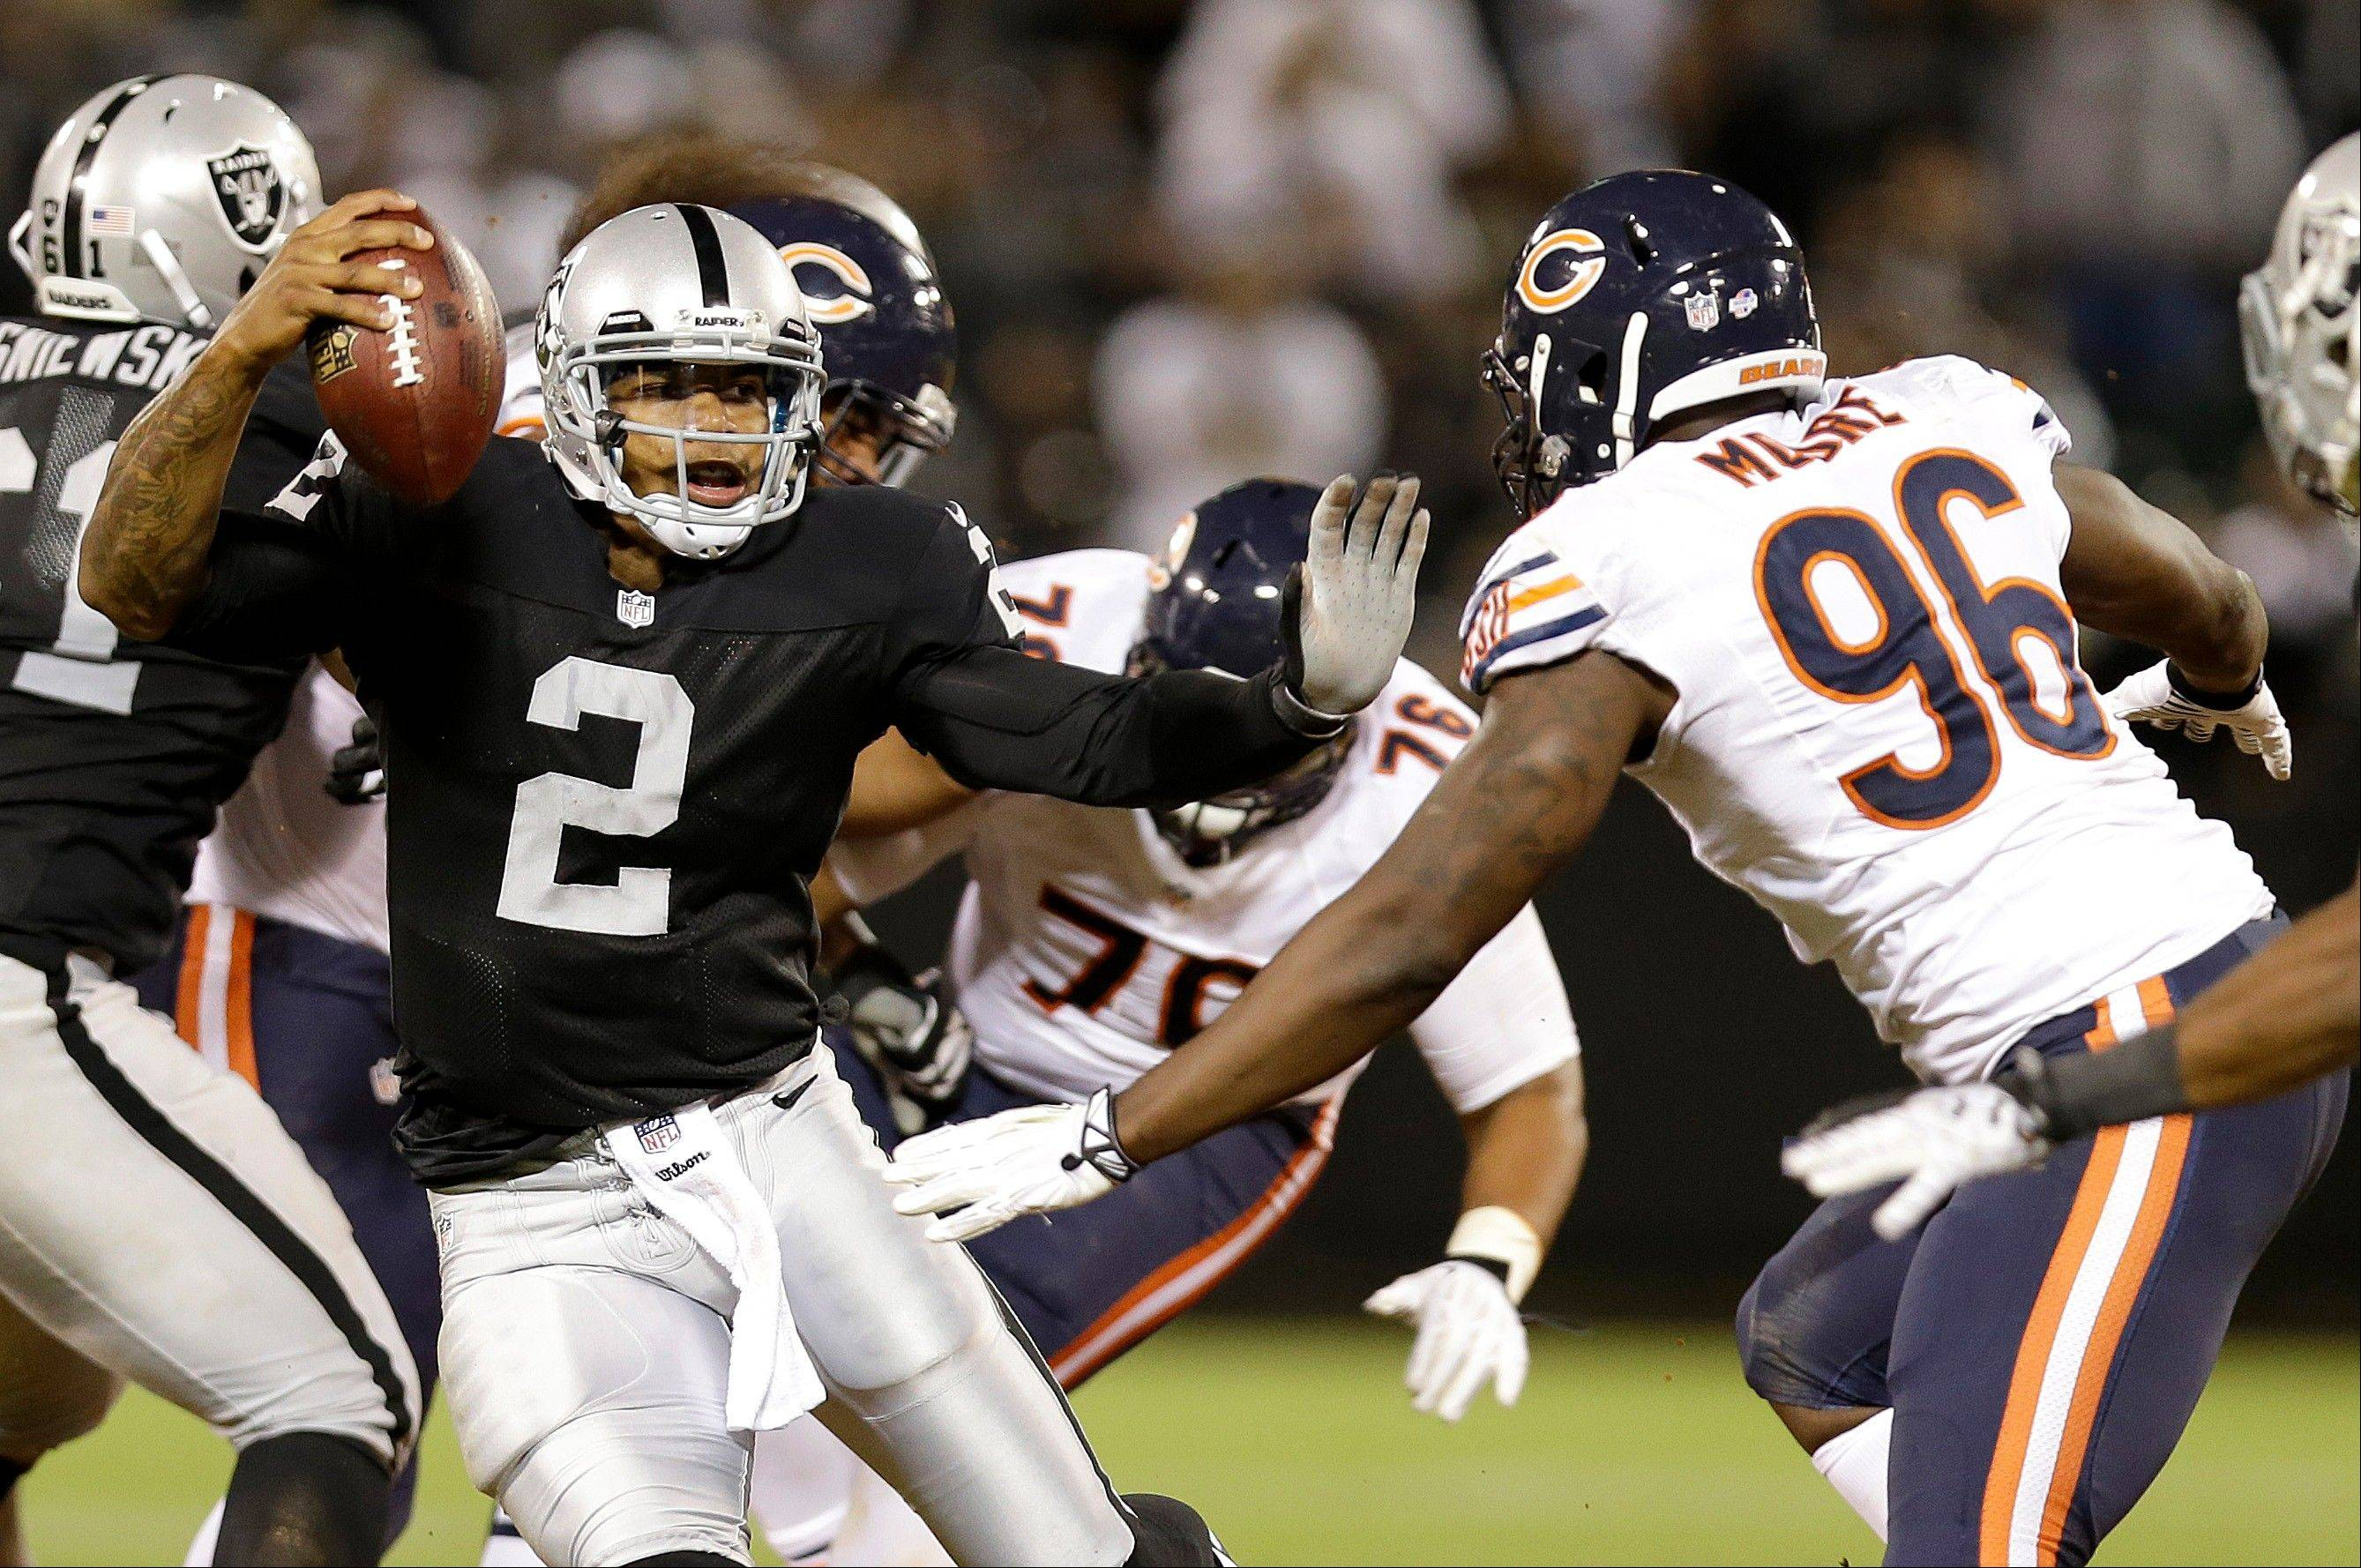 Oakland Raiders quarterback Terrelle Pryor (2) avoids Chicago Bears defensive end Kyle Moore (96) on his 25-yard touchdown run during the third quarter.